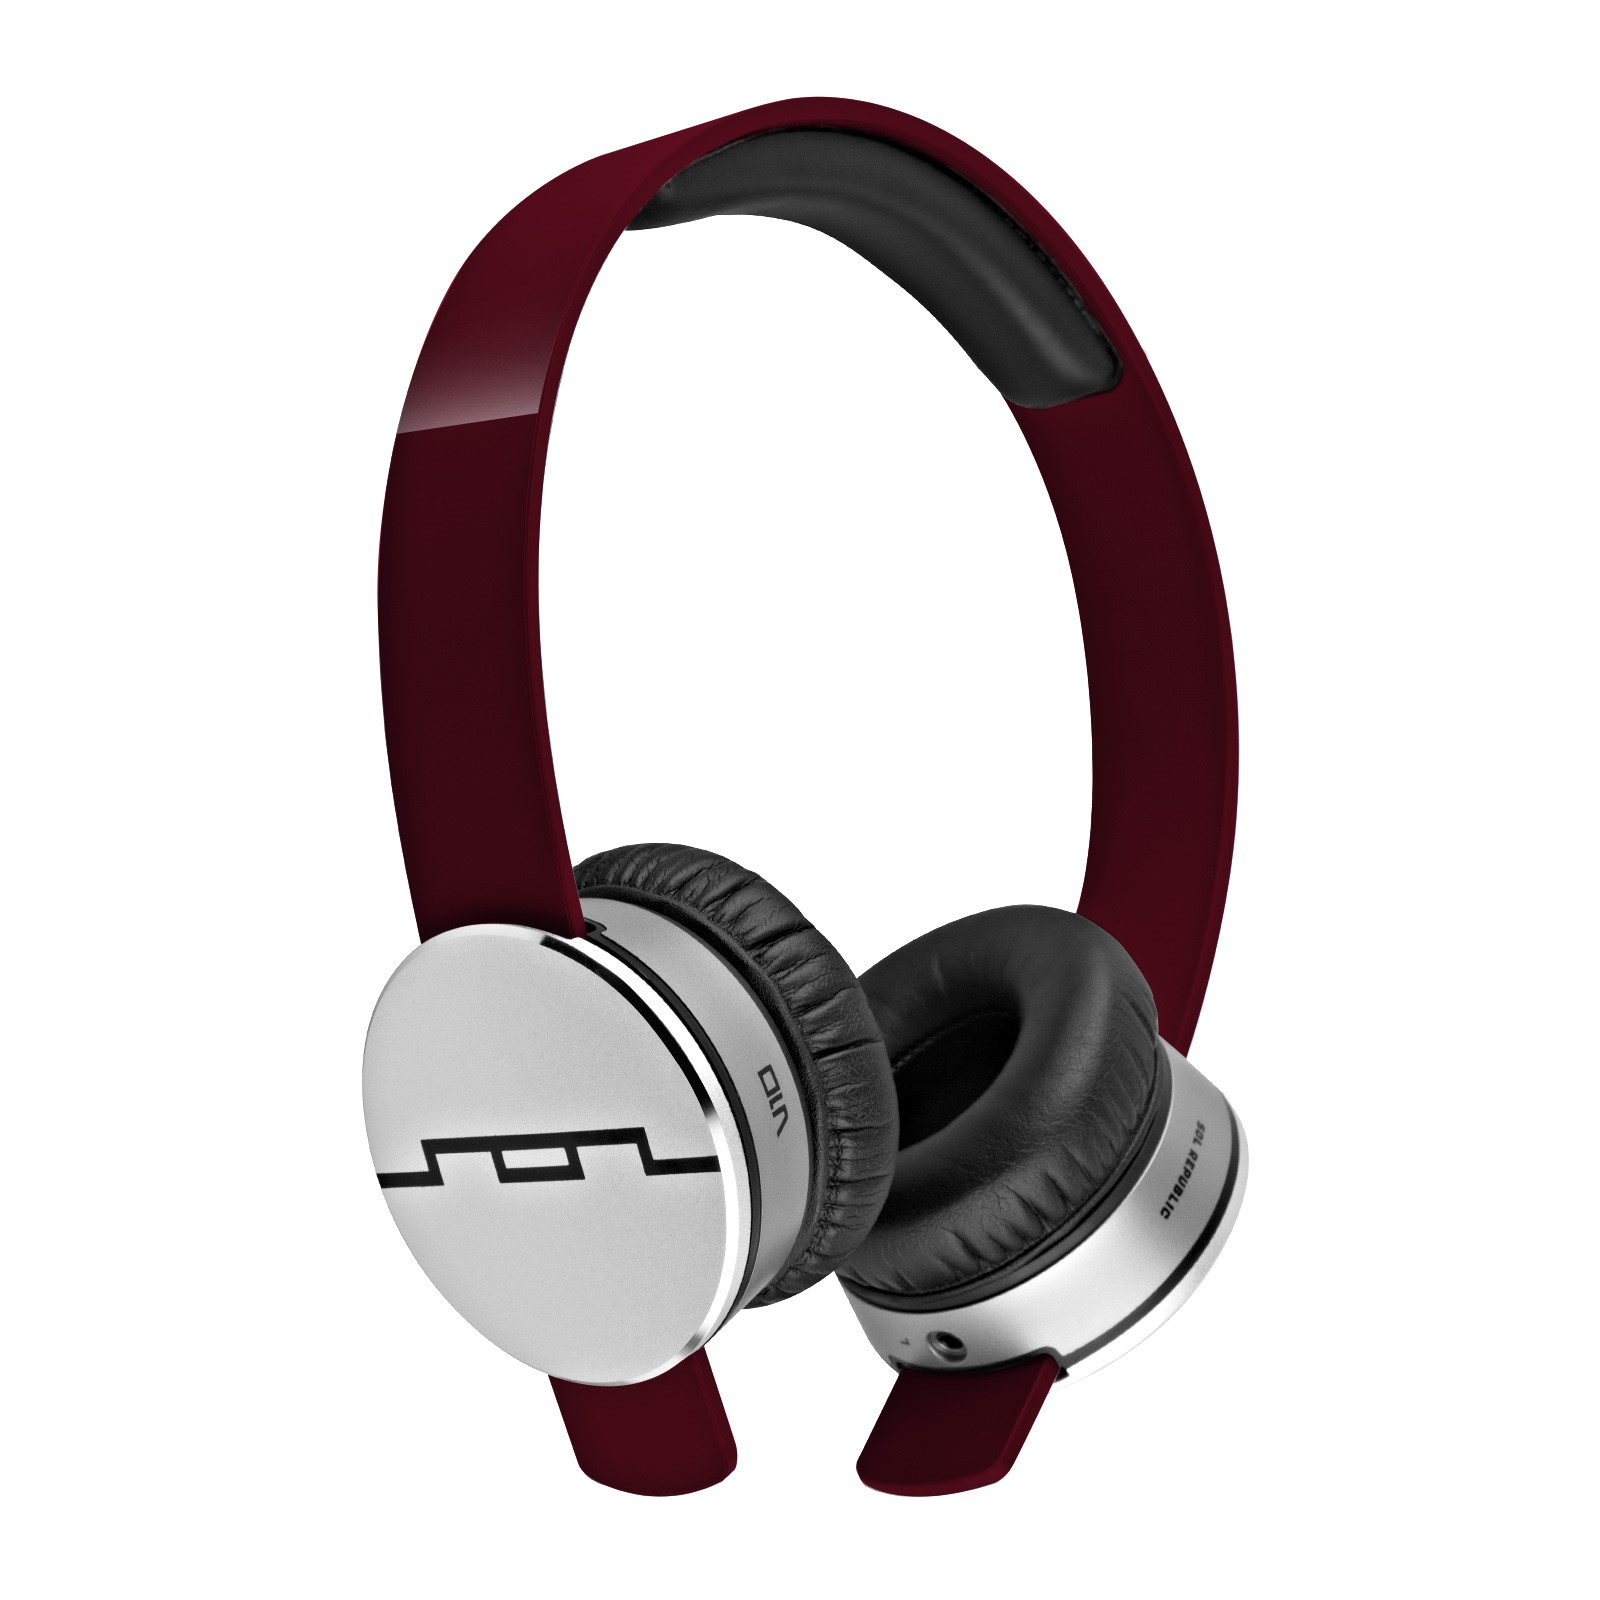 Sol Republic 1241 Tracks On-Ear Interchangeable Headphones w/ 3 Button Mic (Certified Refurbished)